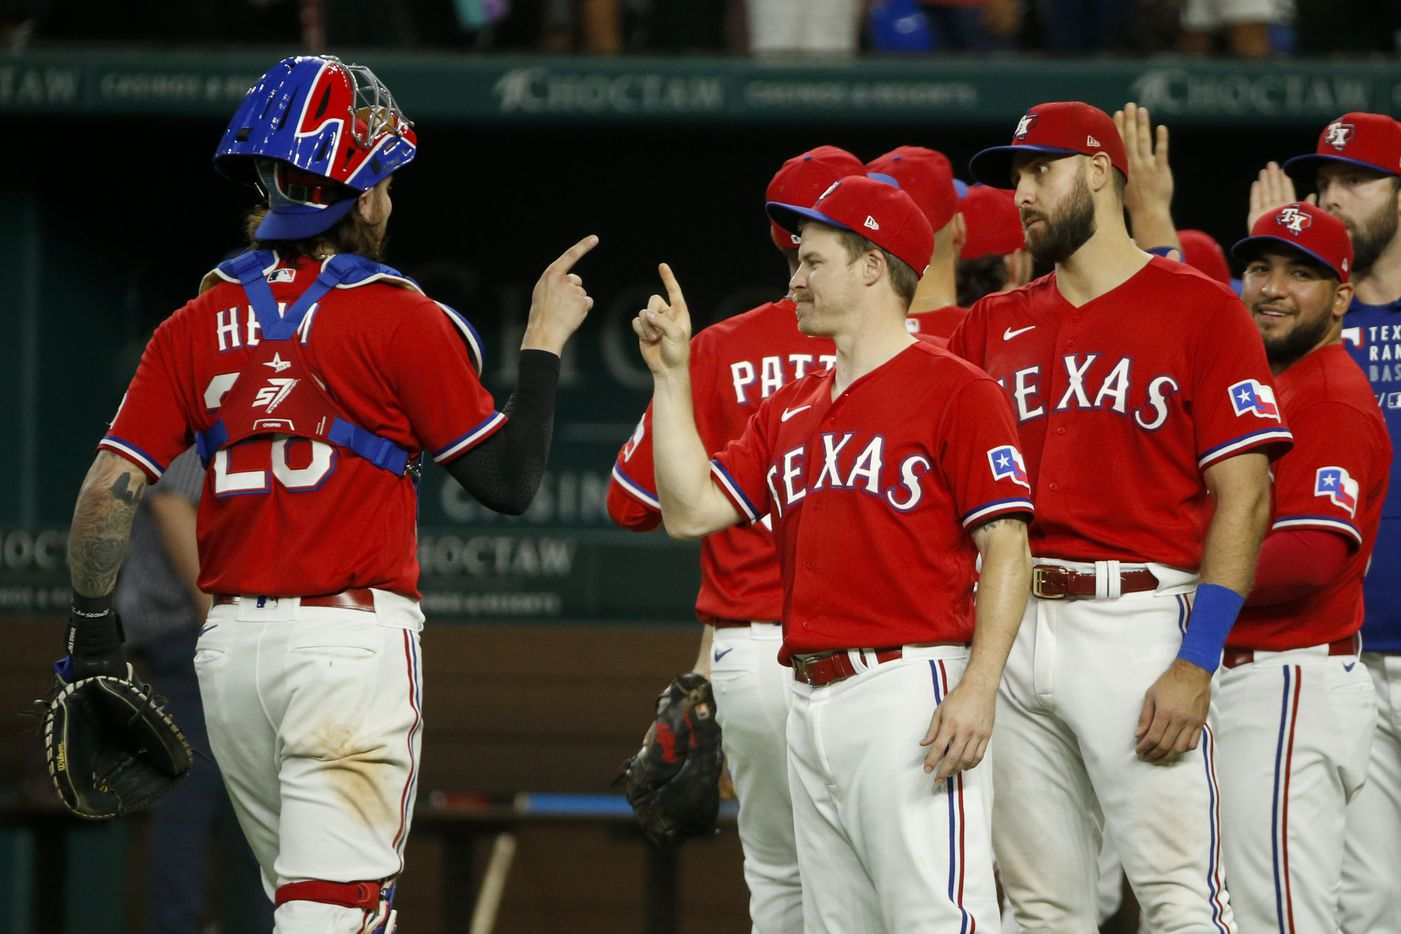 Texas Rangers catcher Jonah Heim (28) and second baseman Brock Holt (16) tap fingers after a 9-4 win over the Kansas City Royals at Globe Life Field on Friday, June 25, 2021, in Arlington. (Elias Valverde II/The Dallas Morning News)